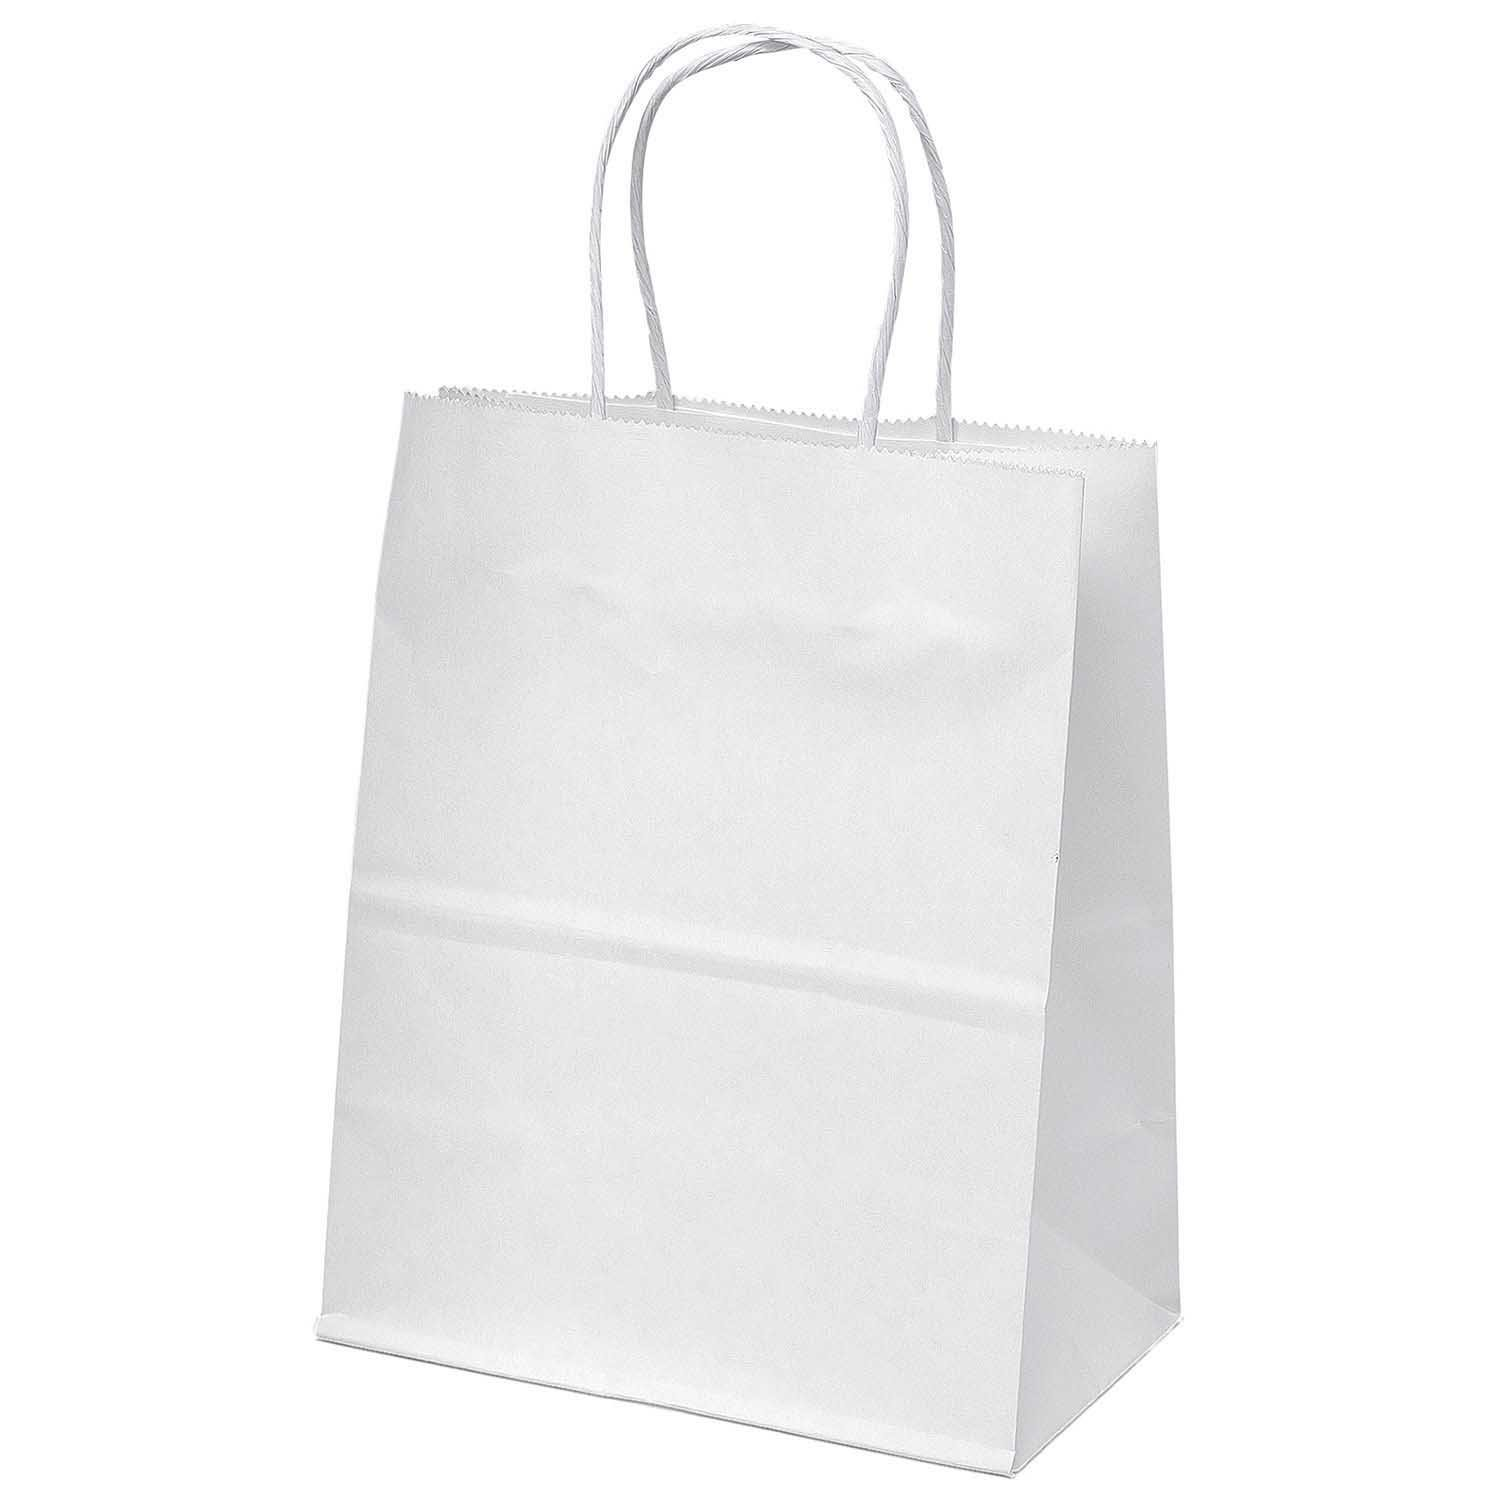 Paper Gift Bags Wholesale 10 Quot X 8 Quot White Paper Kraft Gift Bags With Handles Party